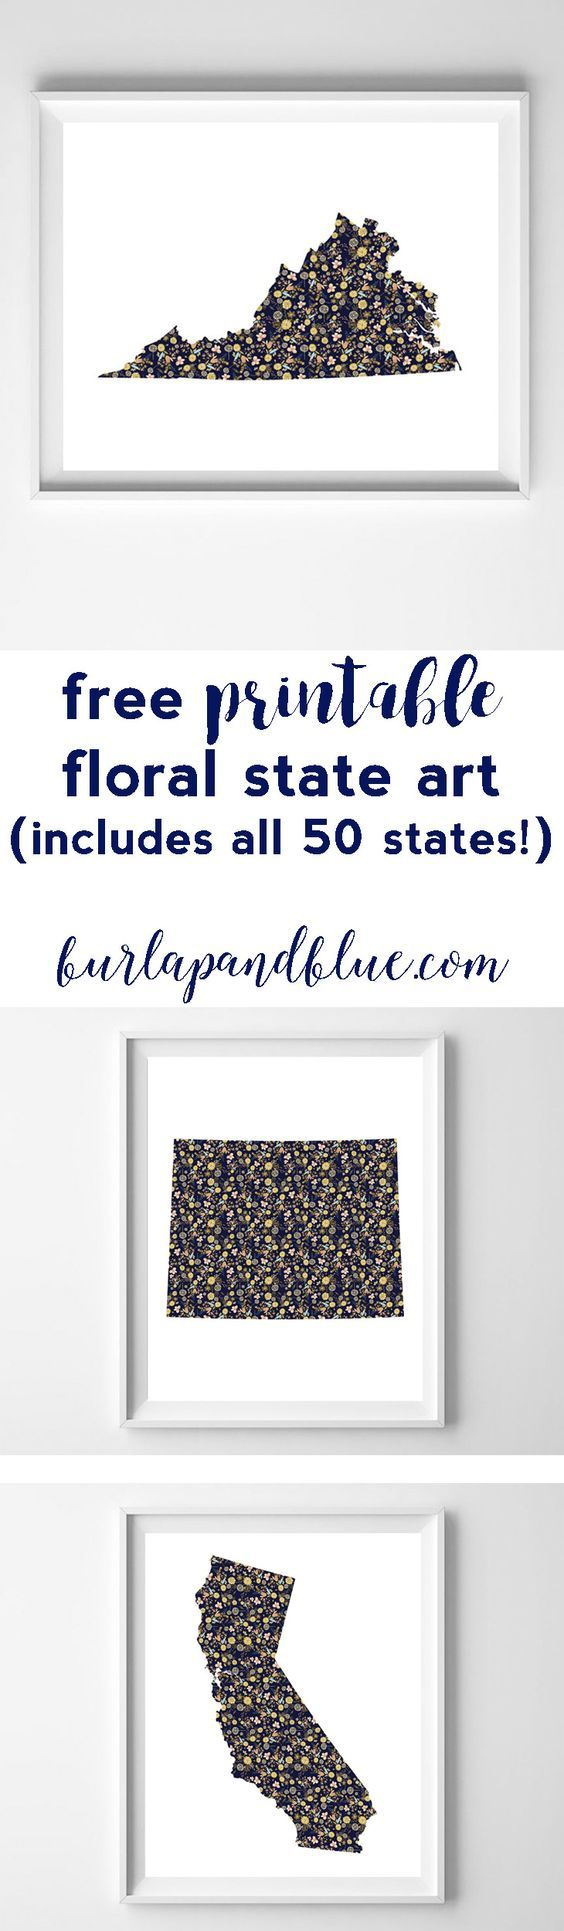 free printable state art! great wedding or moving gift...just print, frame and hang!